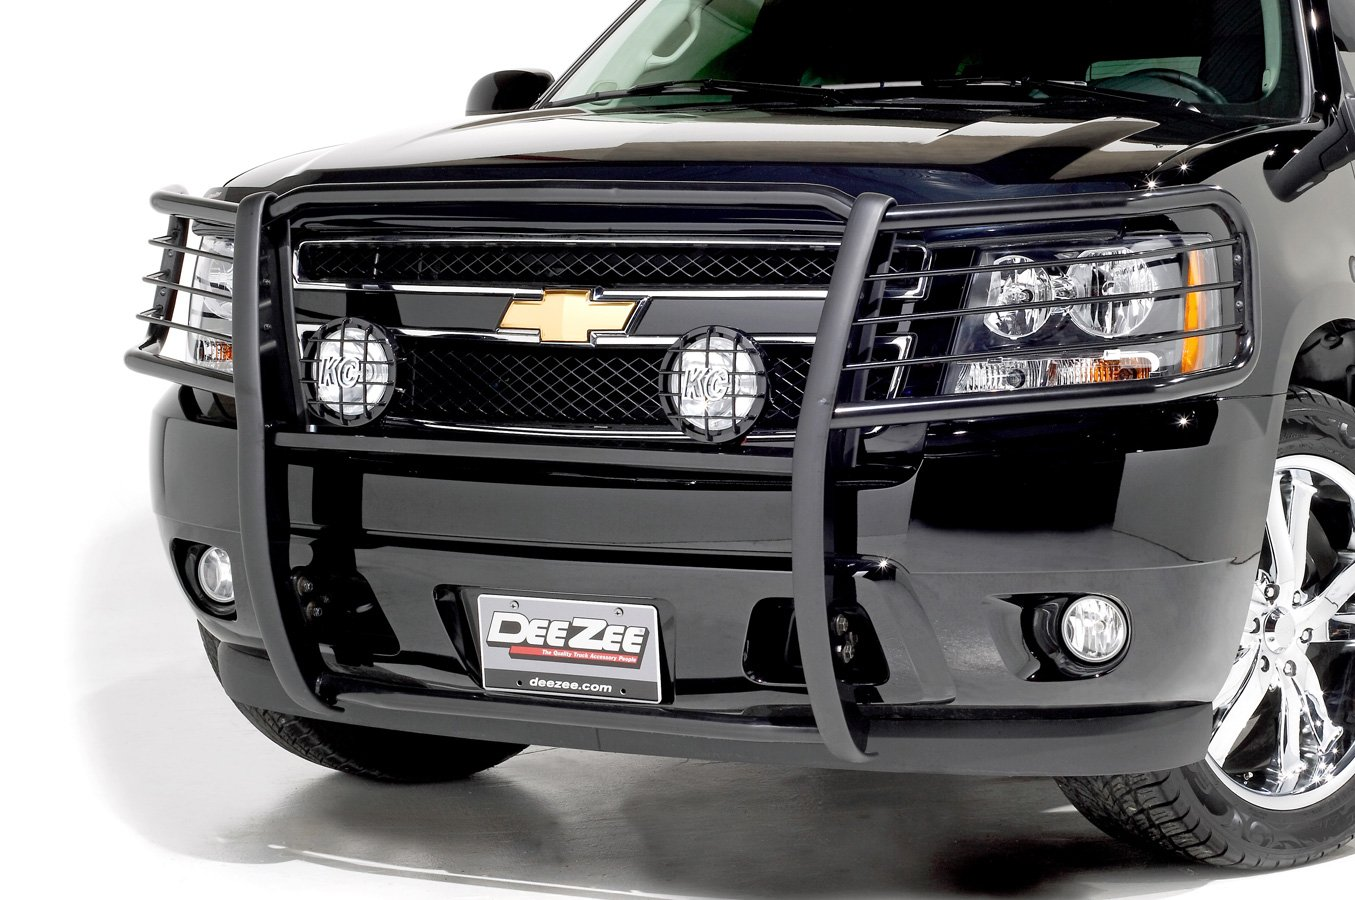 Chevy Avalanche 2016 Price >> Dee Zee Euro Grille Guard, Dee Zee Grill Guard